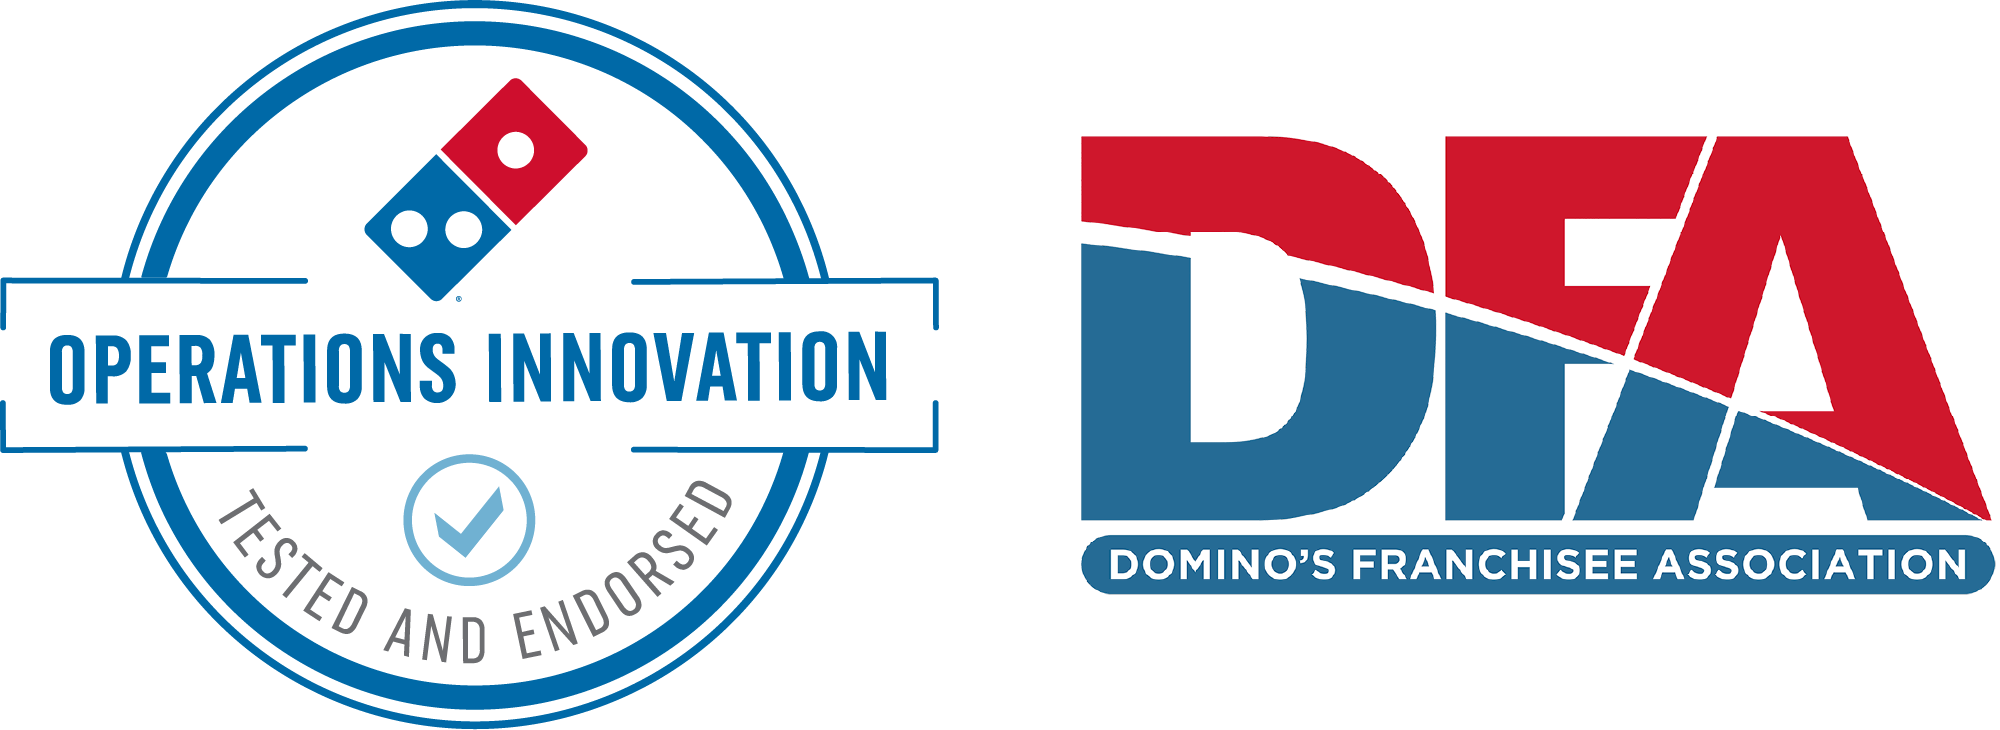 Operations Innovation Tested and Endorsed badge, Domino's Franchisee Association logo